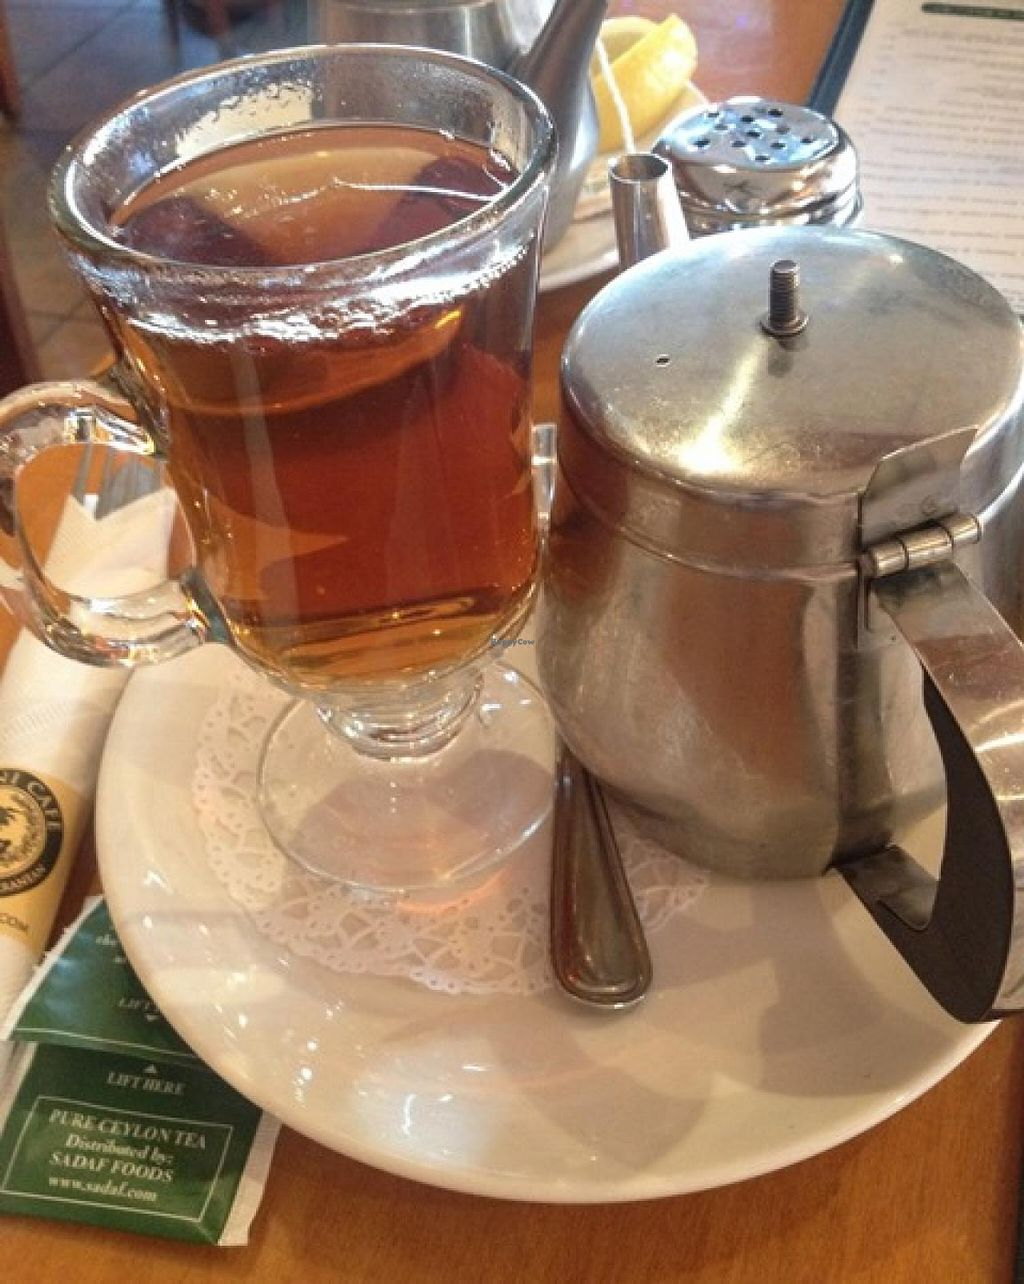 "Photo of Panini Cafe  by <a href=""/members/profile/Dalia23"">Dalia23</a> <br/>Sadaf Tea that I enjoyed at this restaurant.  <br/> December 28, 2013  - <a href='/contact/abuse/image/44307/61166'>Report</a>"